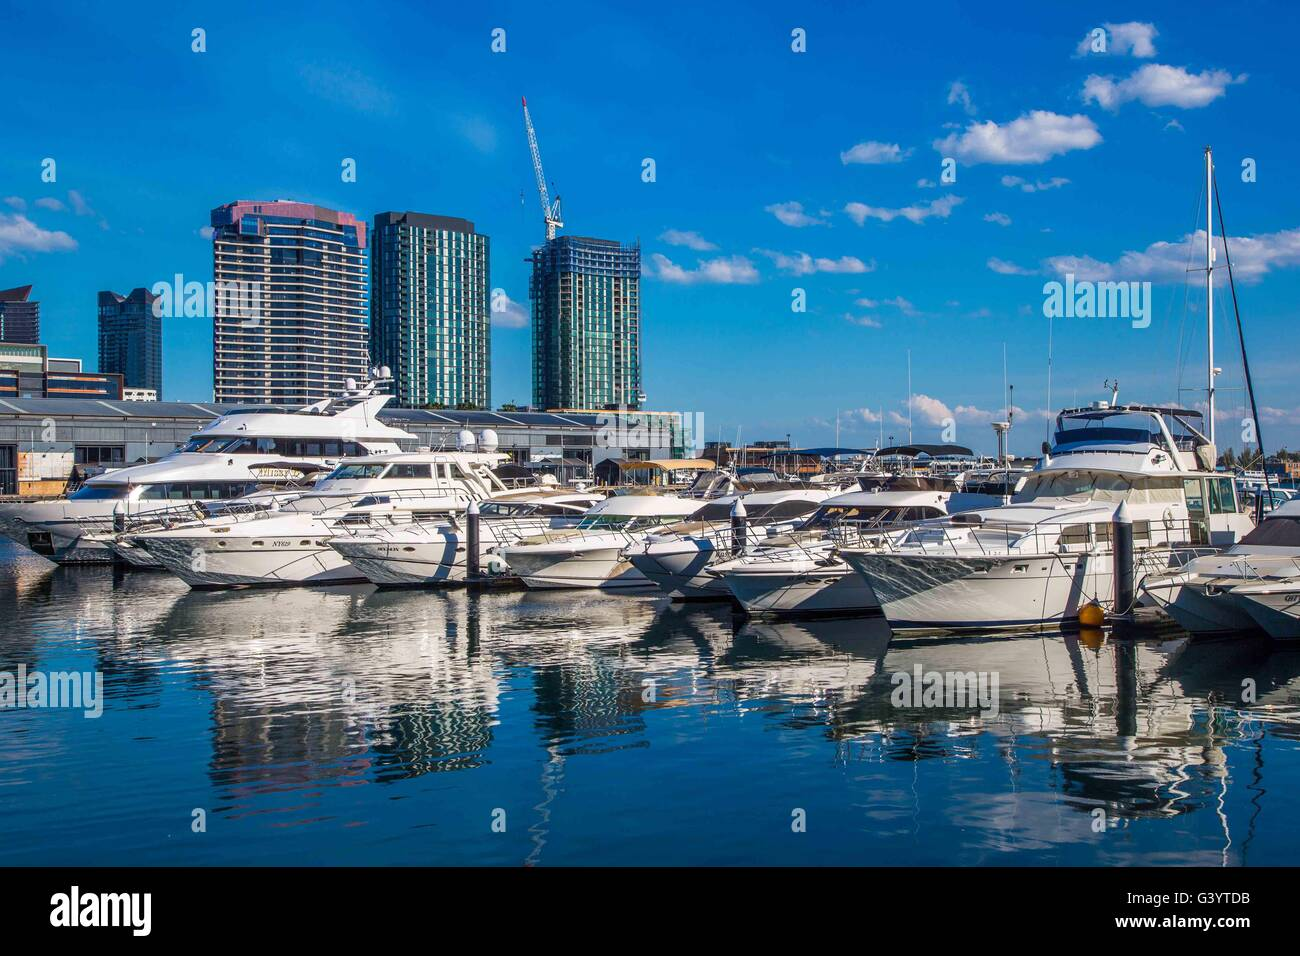 The Marina, boats and harbour or harbor at Docklands, Melbourne, Australia - Stock Image